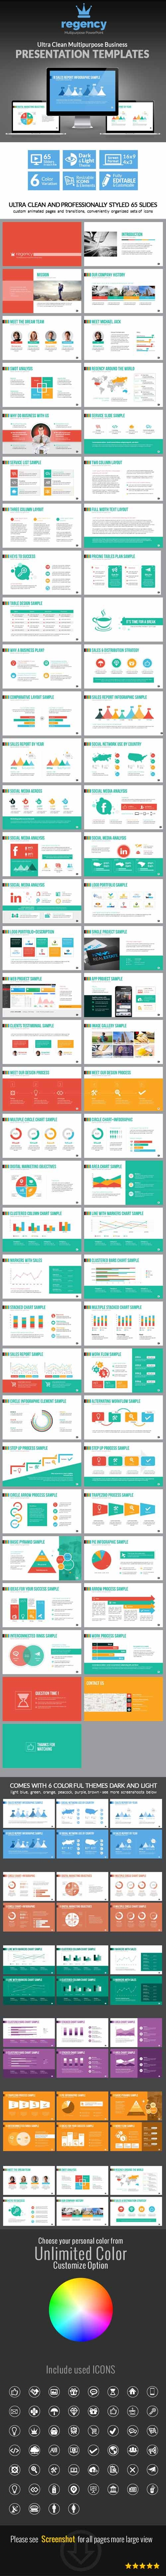 Clean Multipurpose Business Presentation Template 7640114